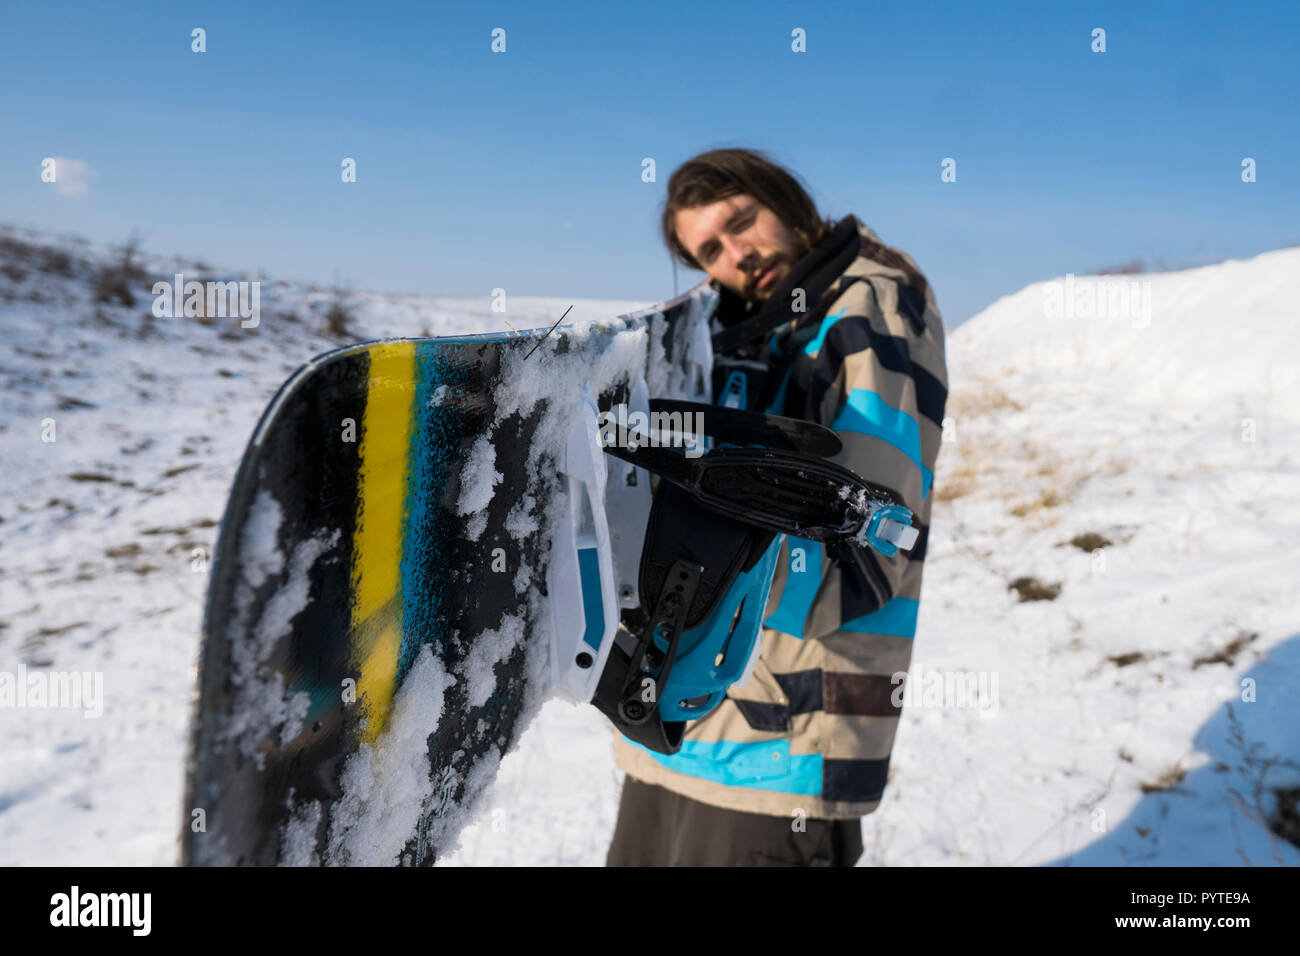 Snowboarder with a long hair holding a snowboard like a gun. Extreme winter sport. - Stock Image